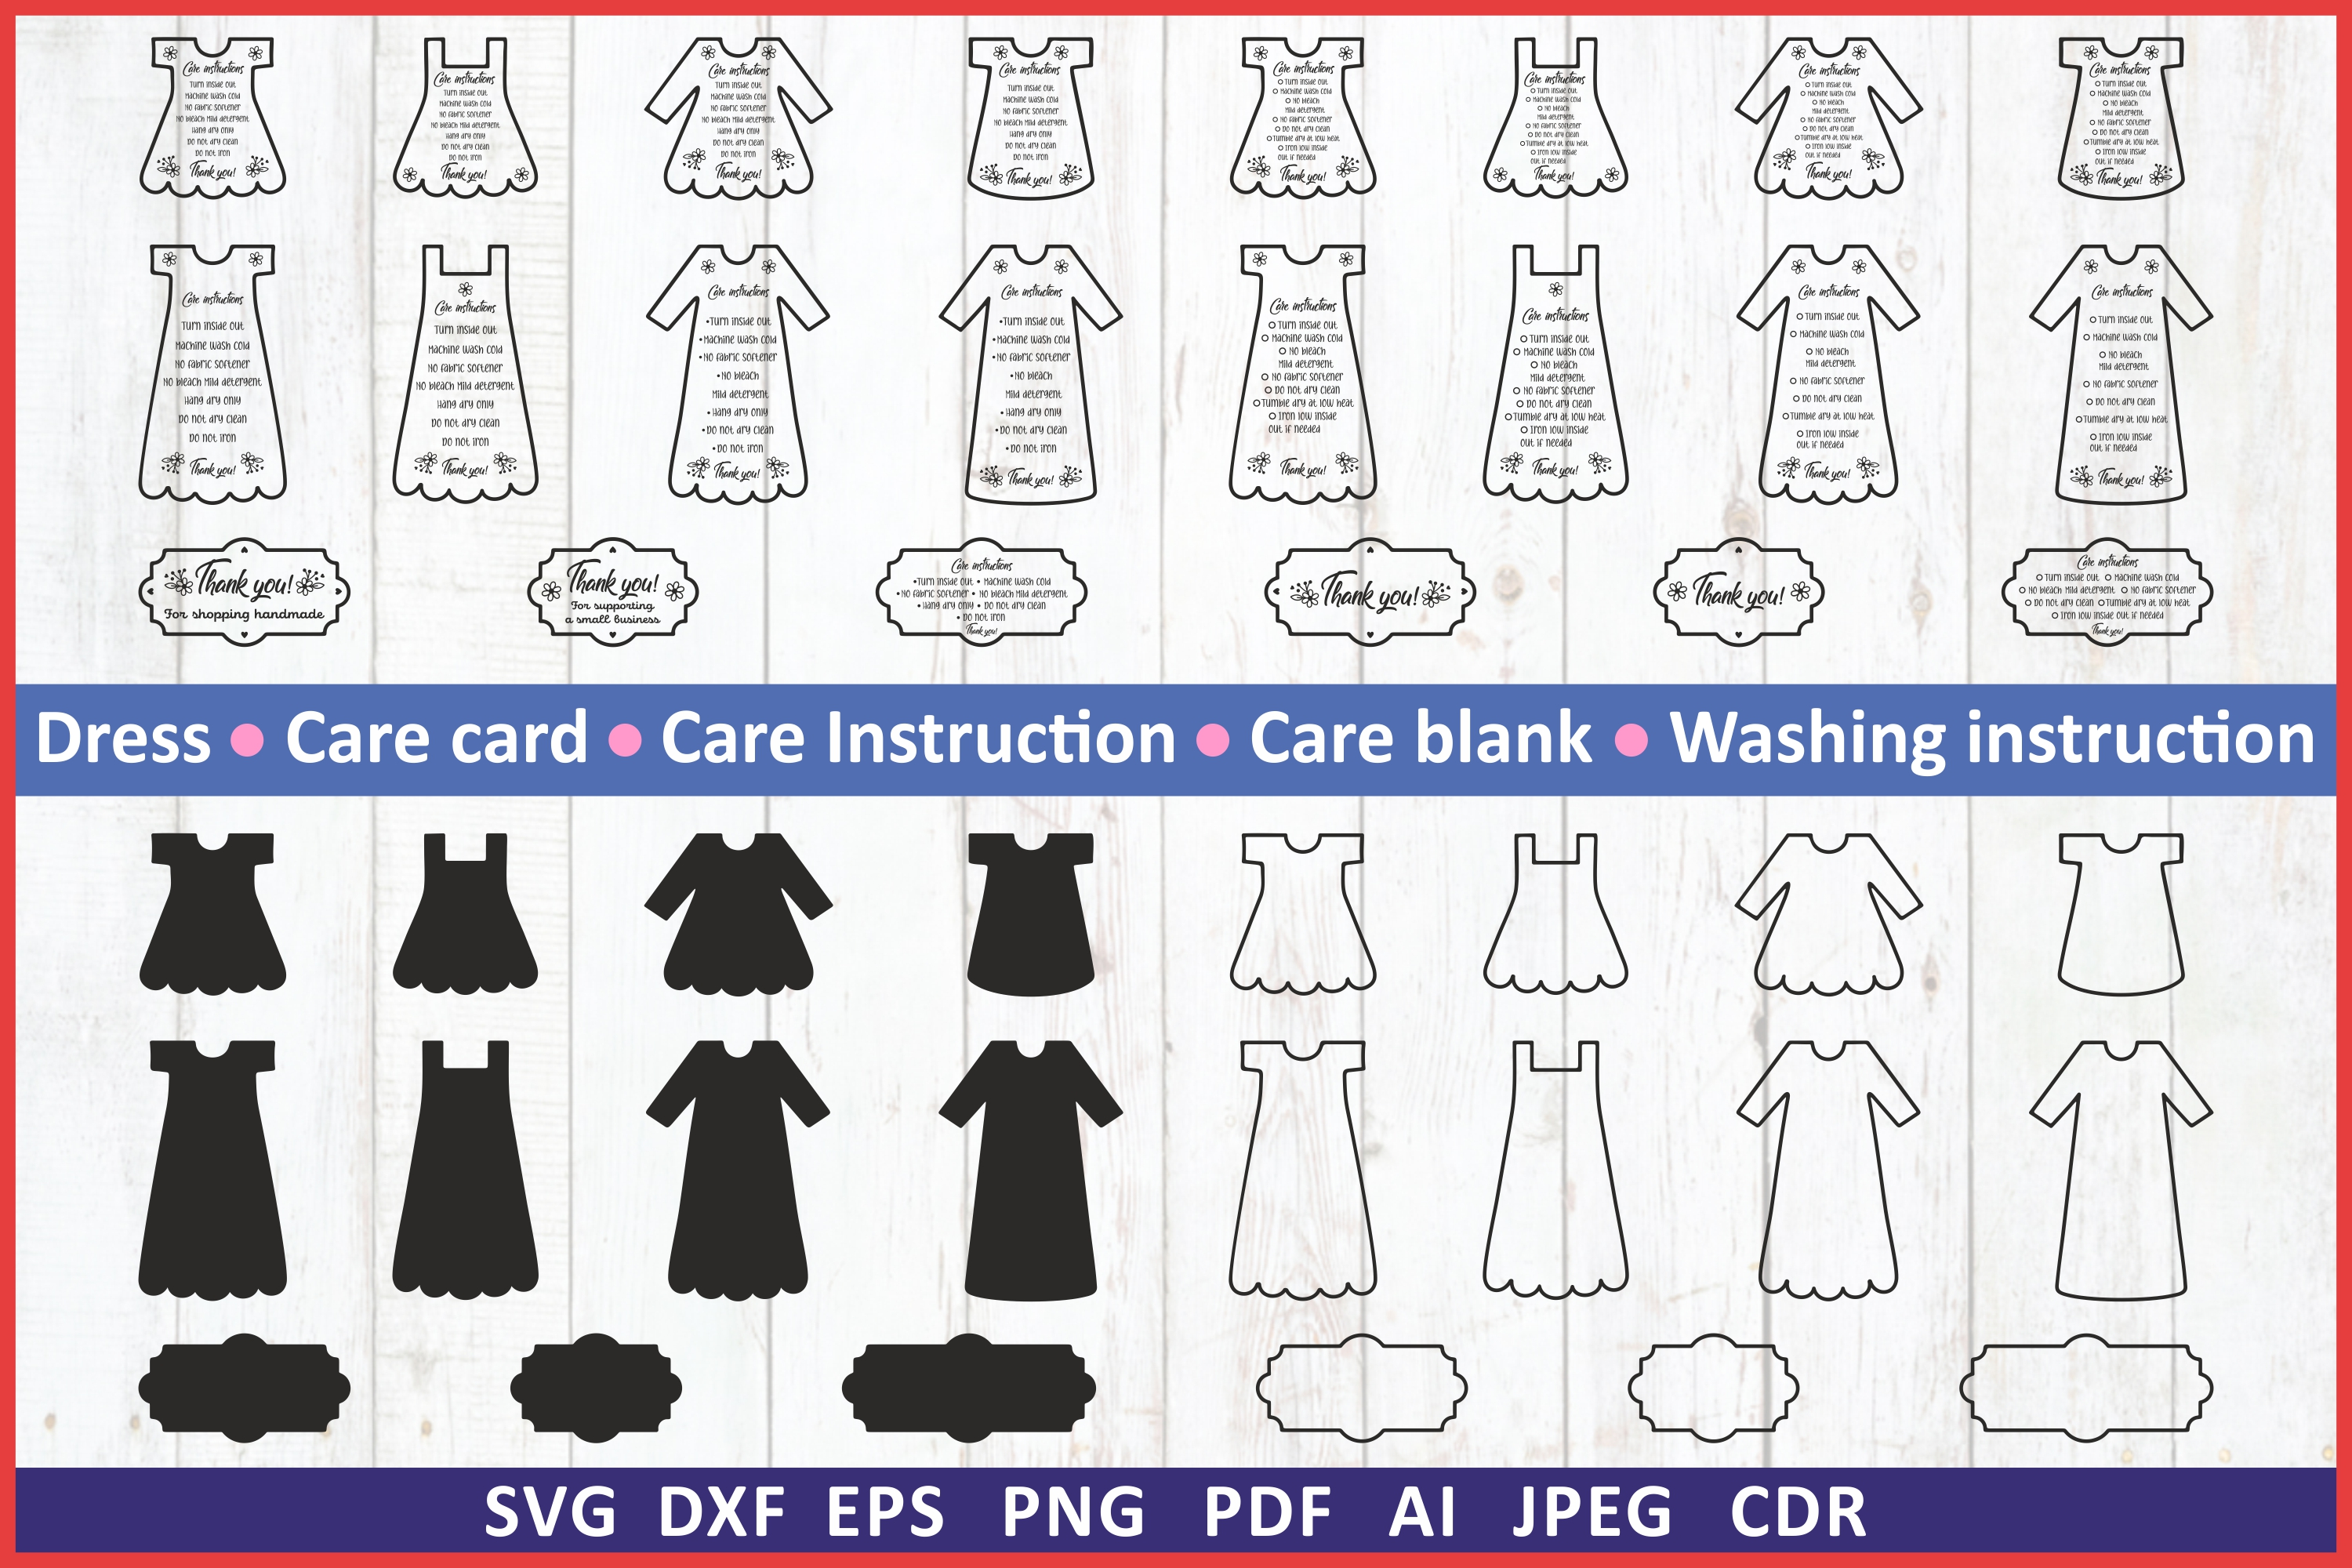 Download Free Care Instruction Graphic By Millerzoa Creative Fabrica for Cricut Explore, Silhouette and other cutting machines.